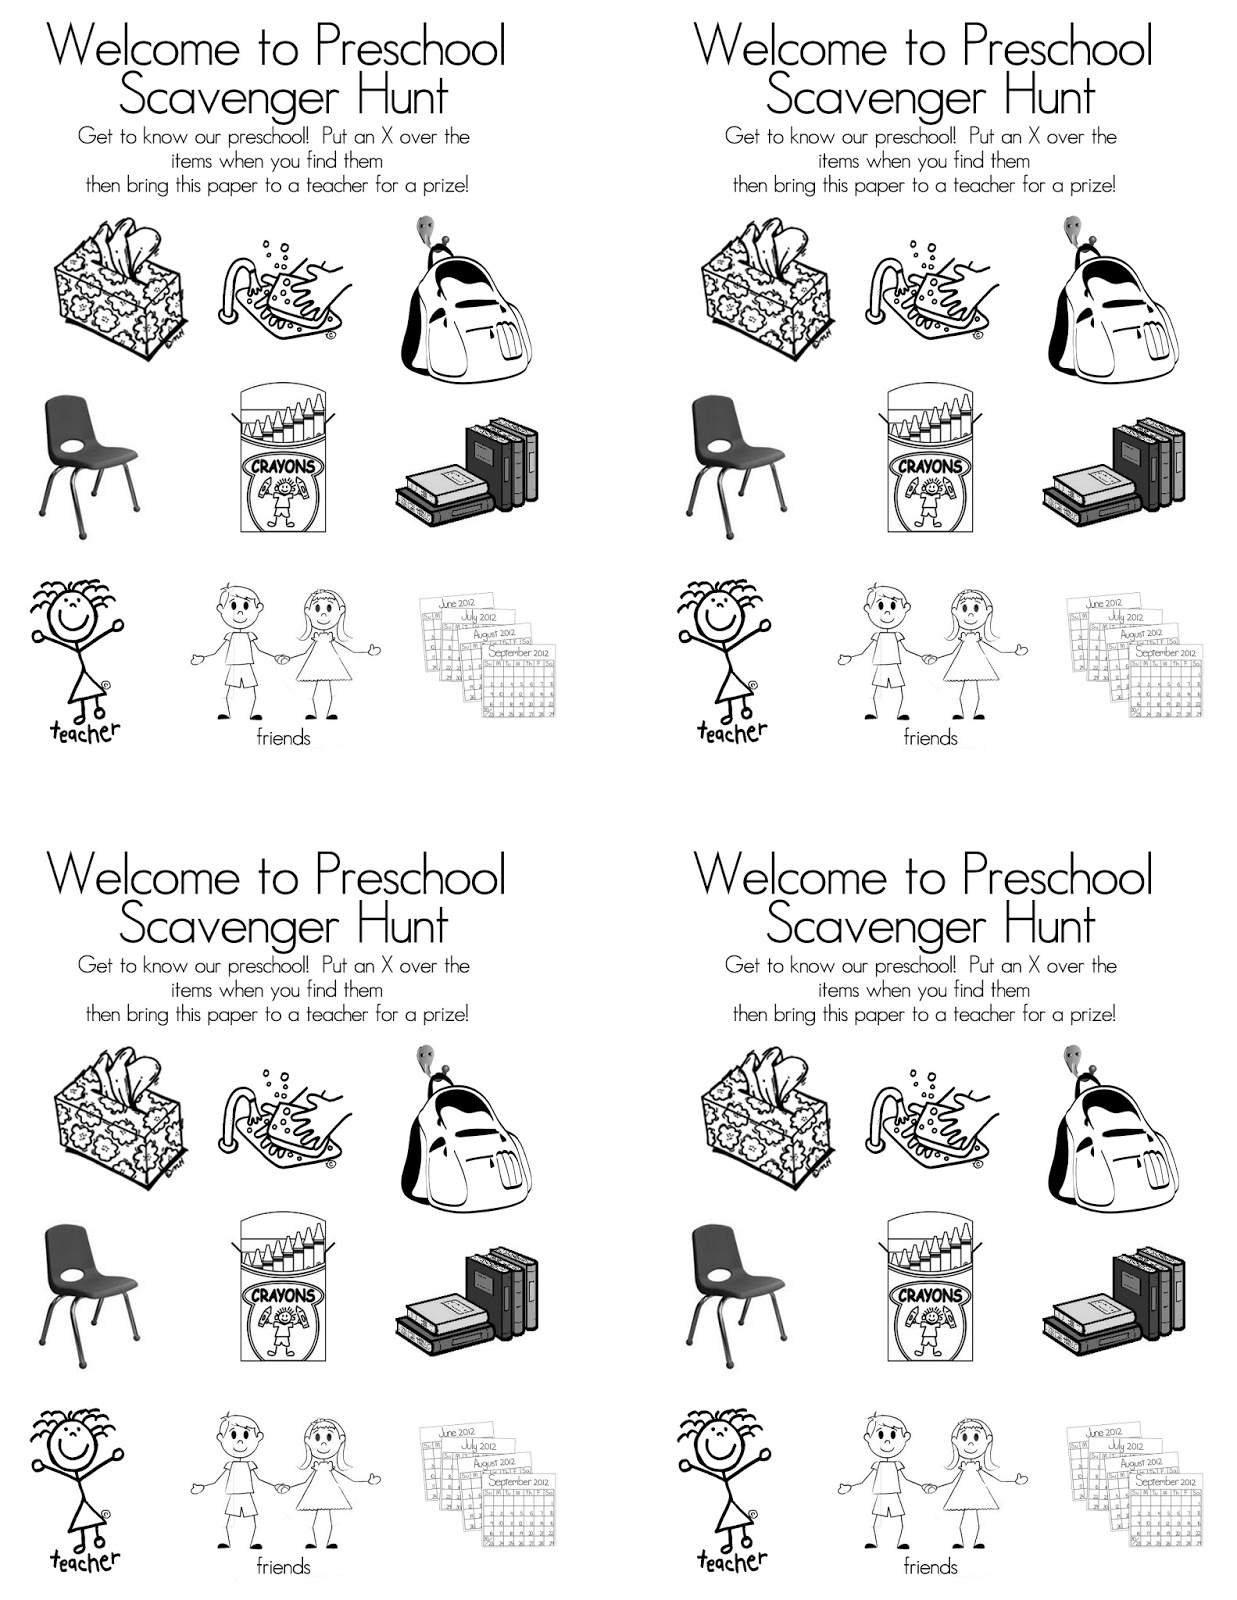 image about Classroom Scavenger Hunt Printable named Preschool Open up Area Cost-free Printable Scavenger Hunt - Suggestions